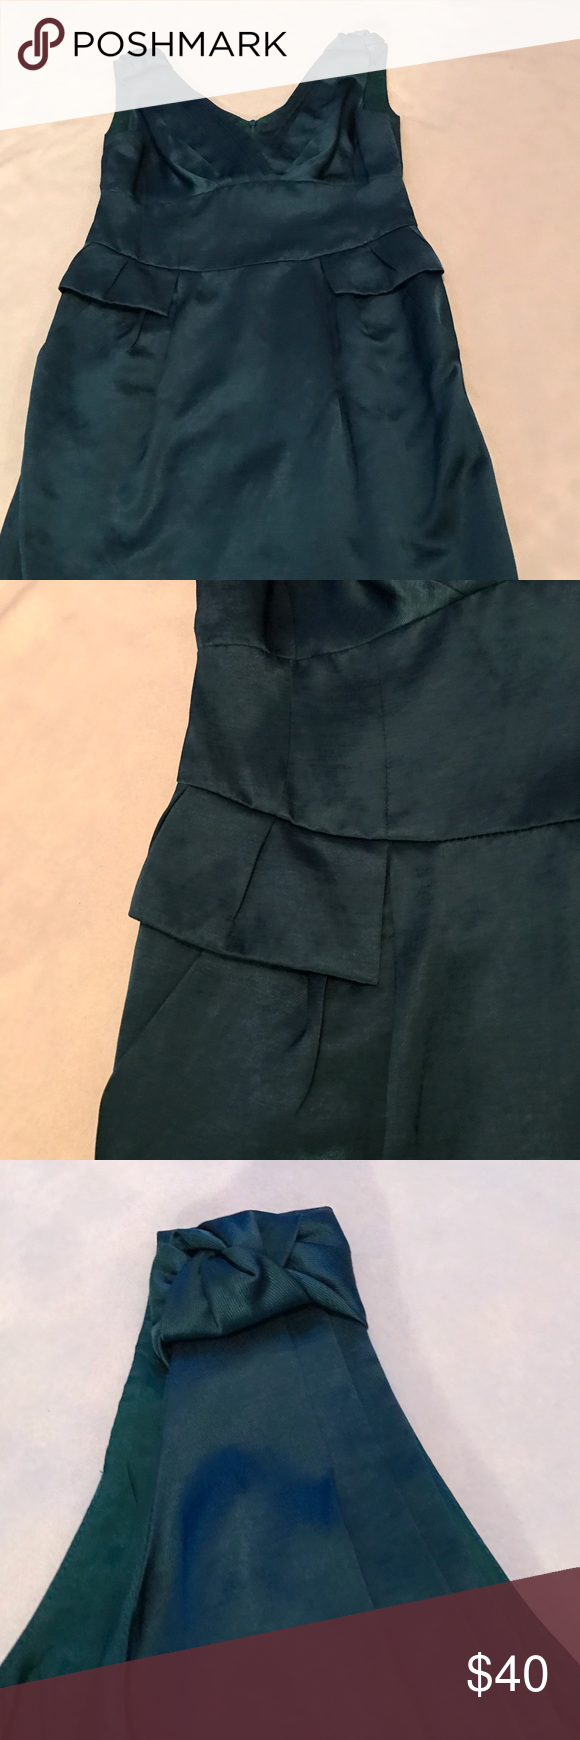 """Nanette Lepore Teal Peplum Dress 36"""" length. Has pockets on the front on both sides. Slit in the back. Never worn just took the tags off as shown in picture. Thicker strap on top. Teal color. Shinny silky material. Bundle 2+ items for a discount Nanette Lepore Dresses Midi"""